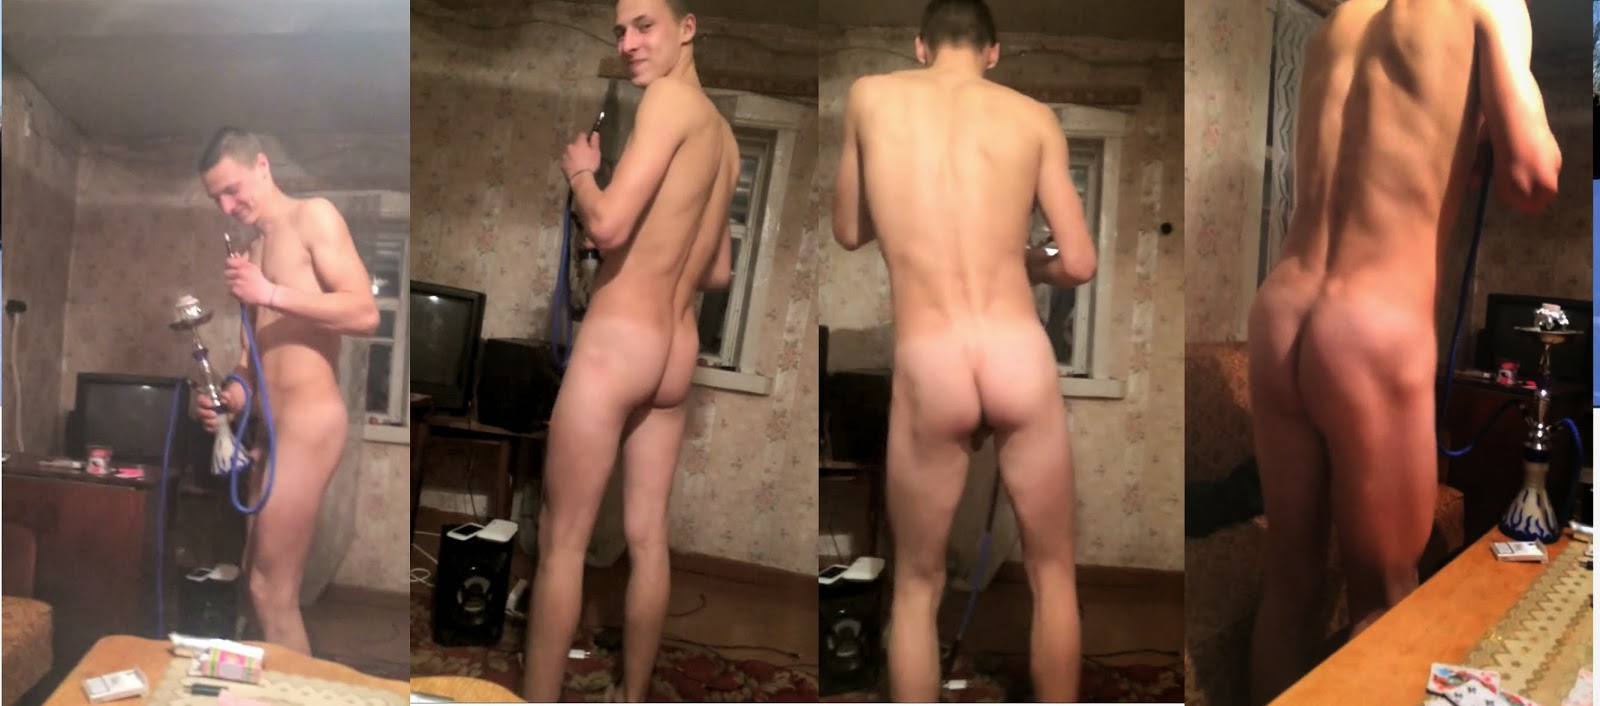 Images - Nude russian boy butt